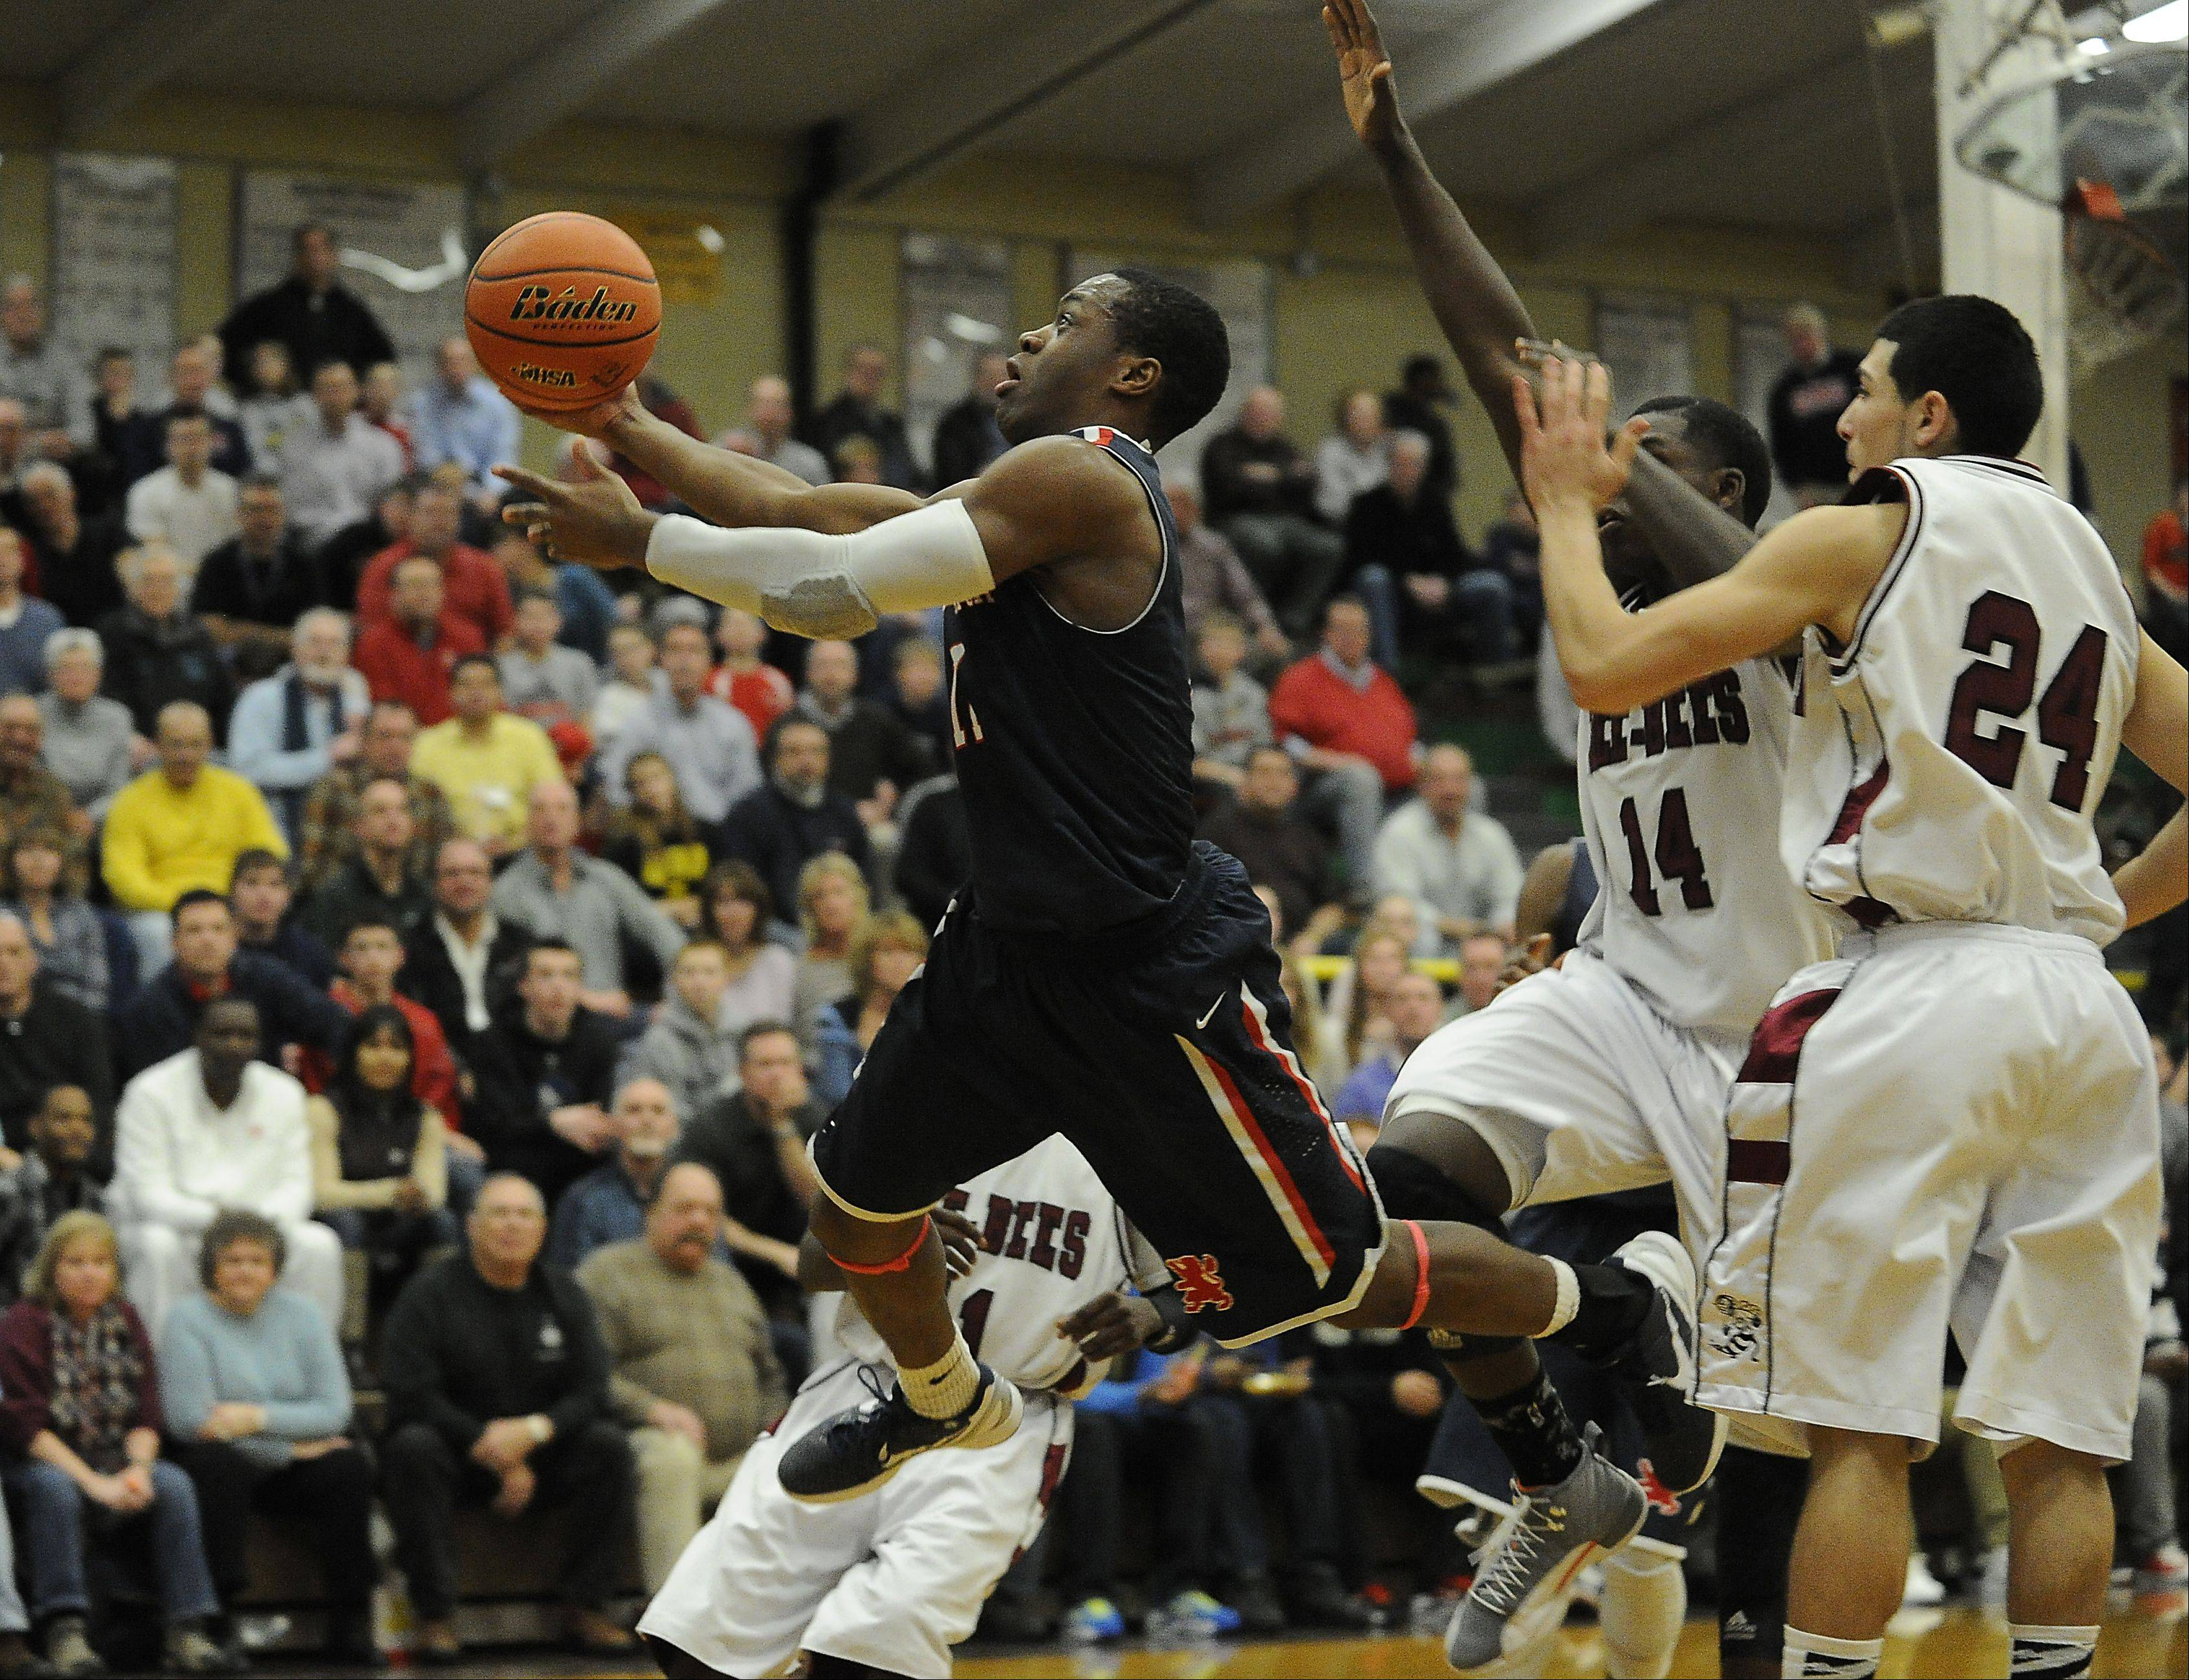 St. Viator's Mayo Arogundade scores in the fourth quarter to help the Lions past Zion-Benton in the Class 4A Waukegan sectional semifinals Thursday.